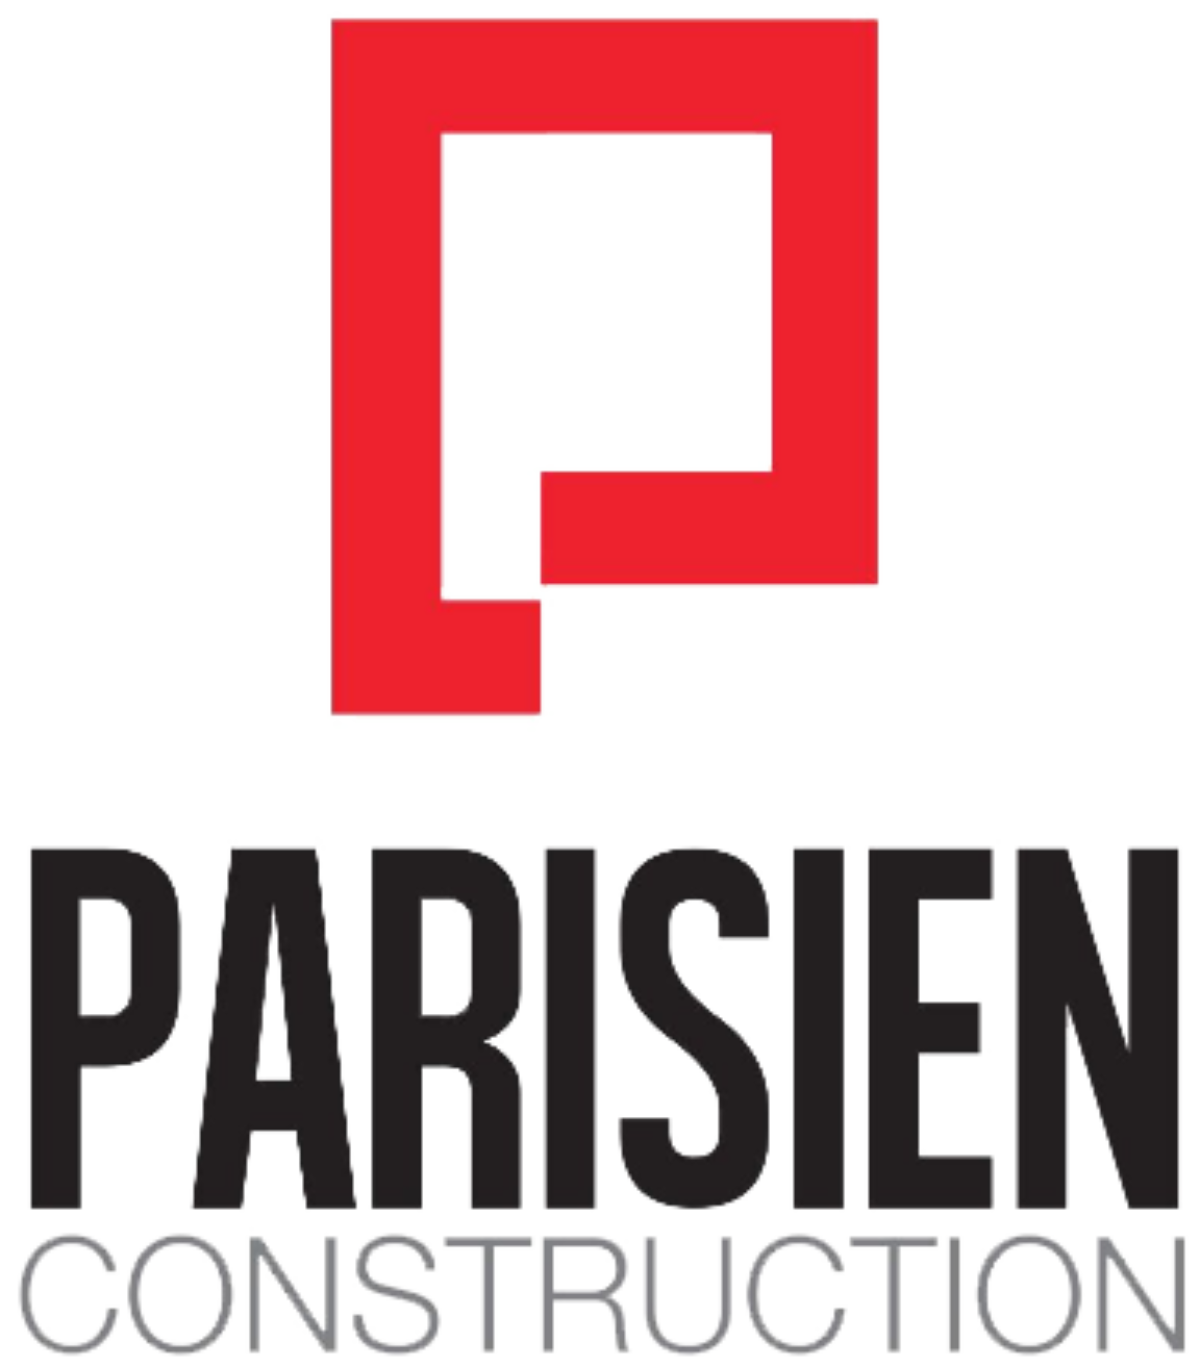 Parisien Construction